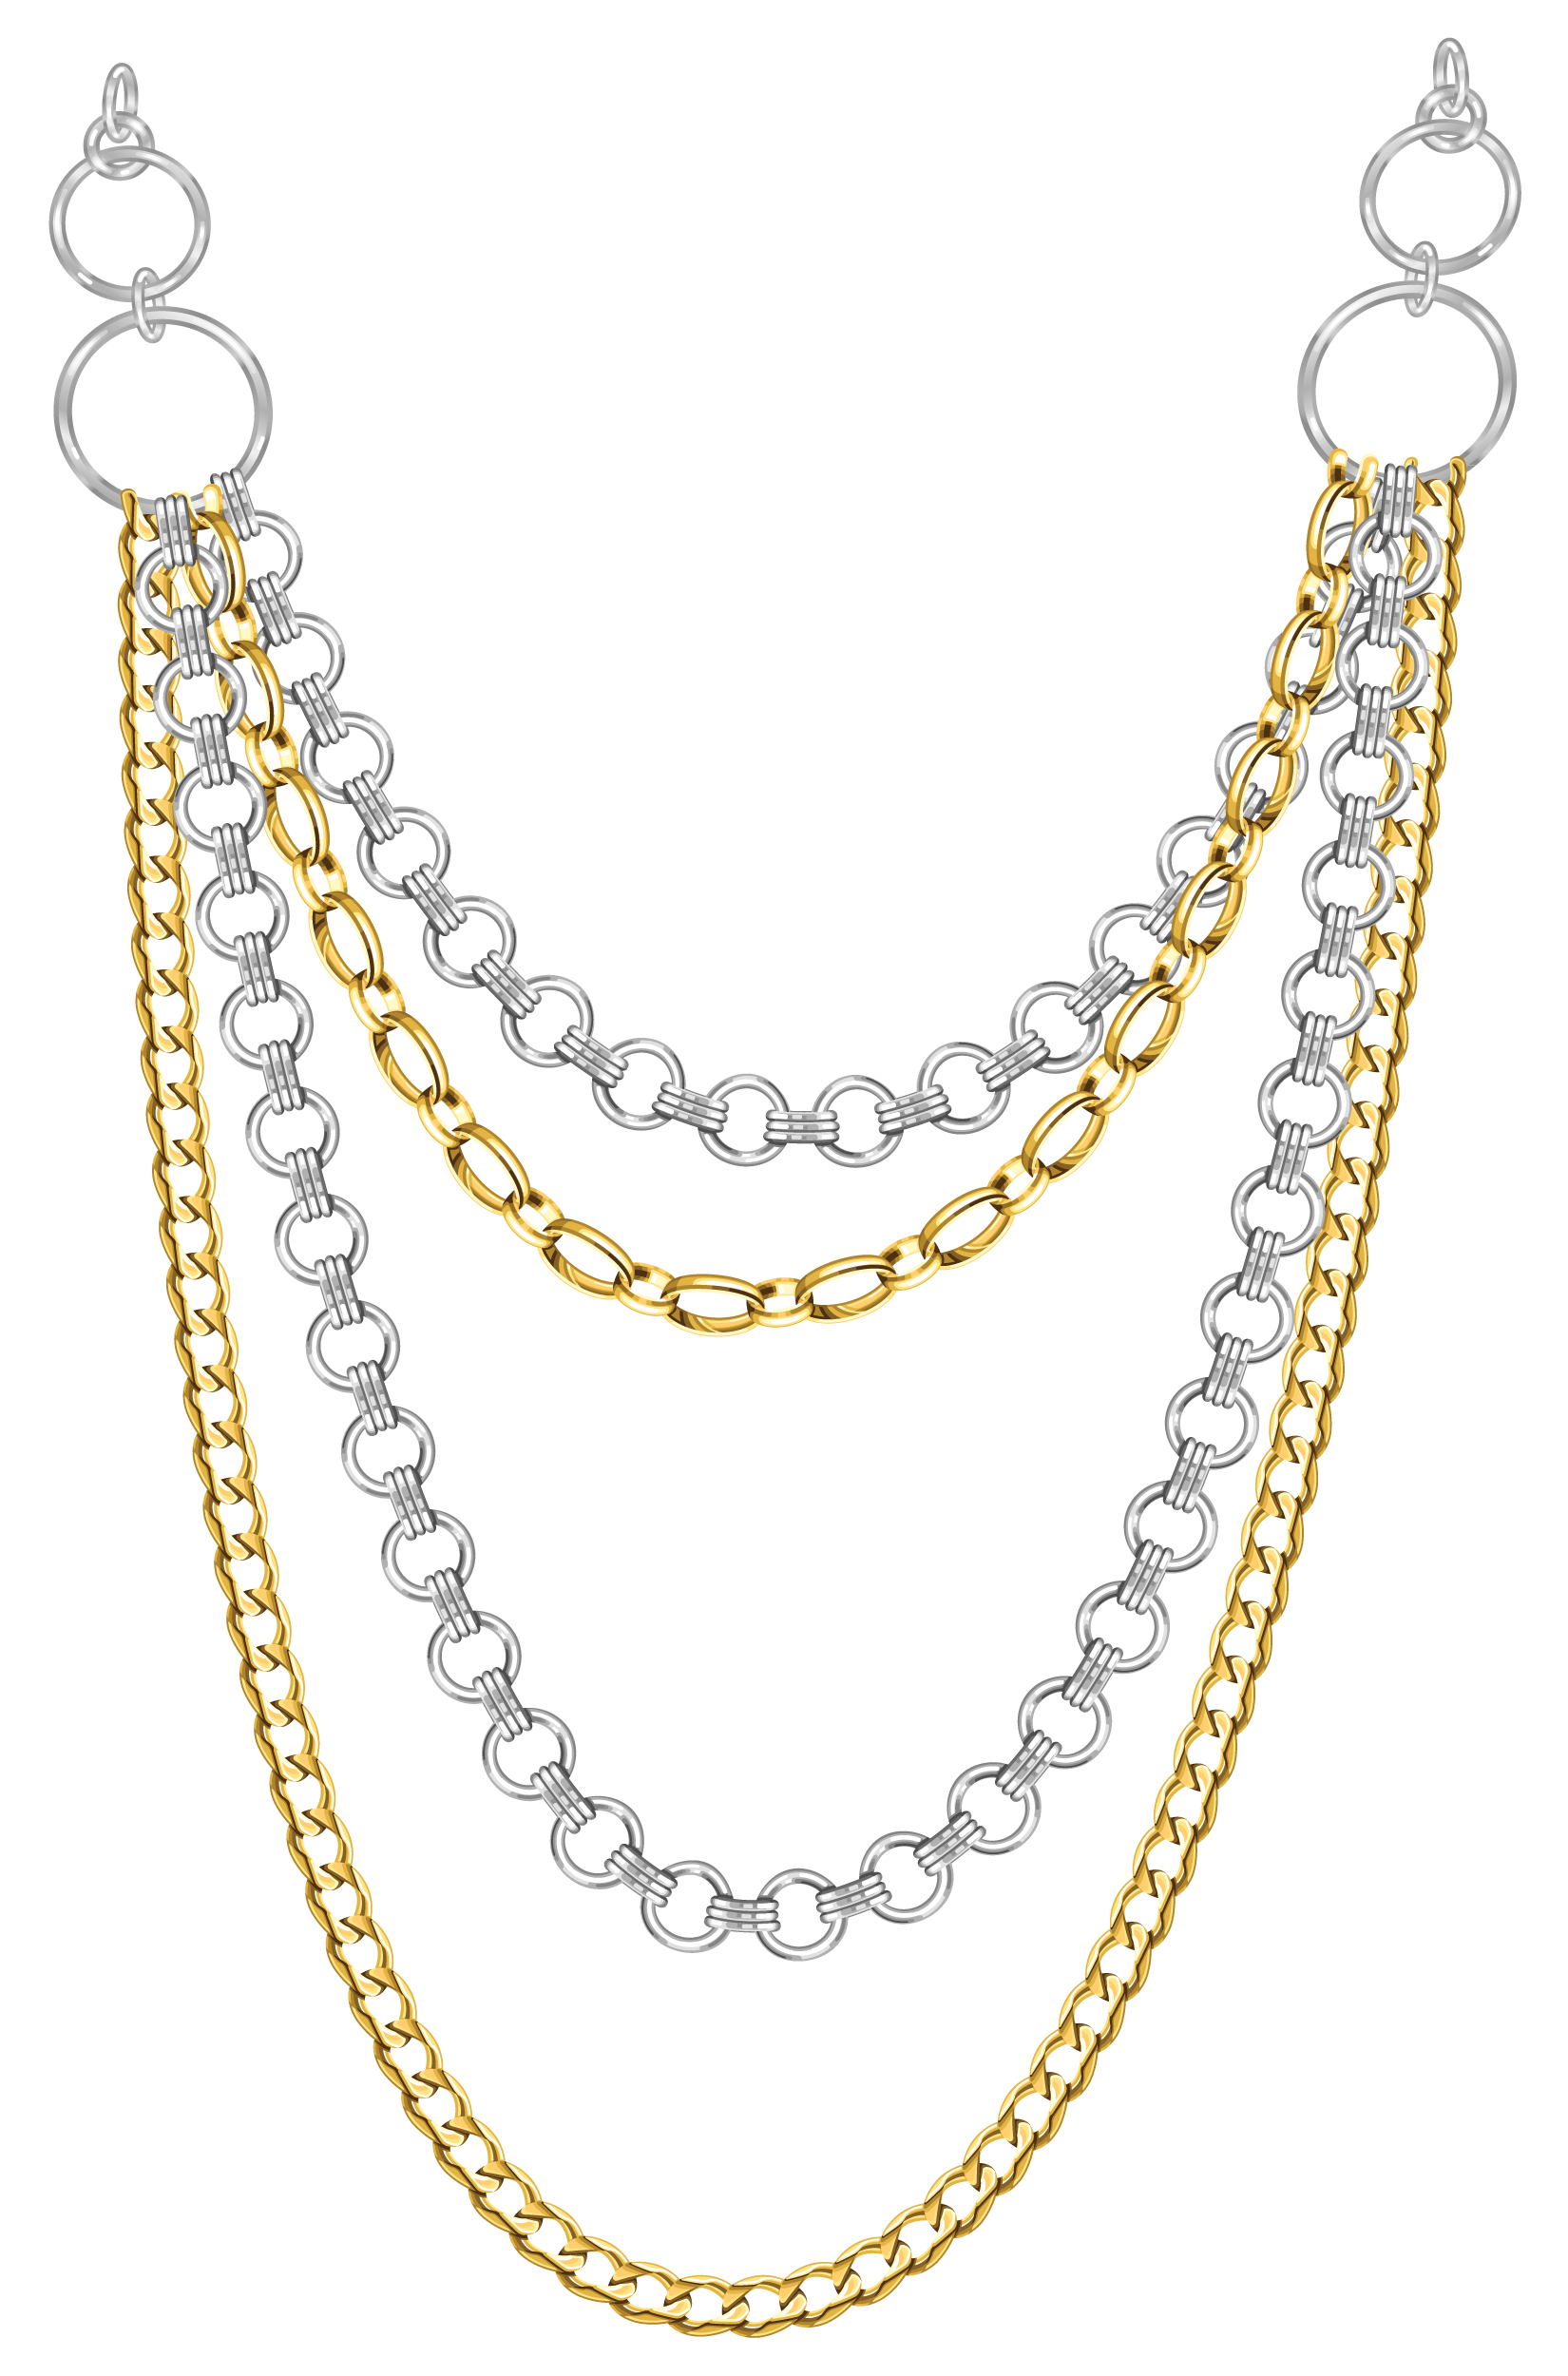 free multistrand jewelry necklace graphic tradigital